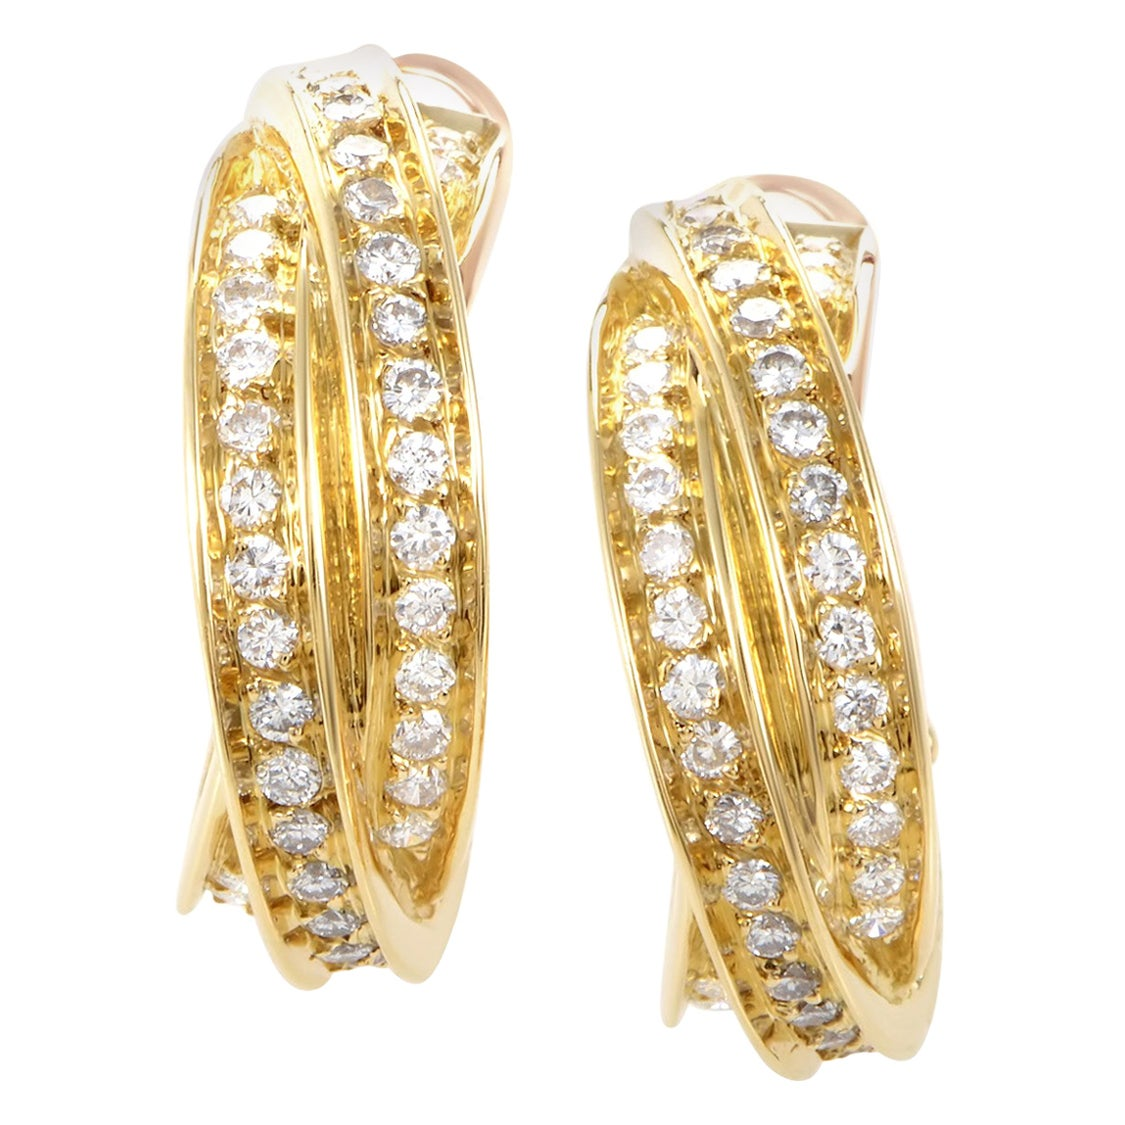 Cartier Trinity 18 Karat Yellow Gold Diamond Pave Clip-On Hoop Earrings